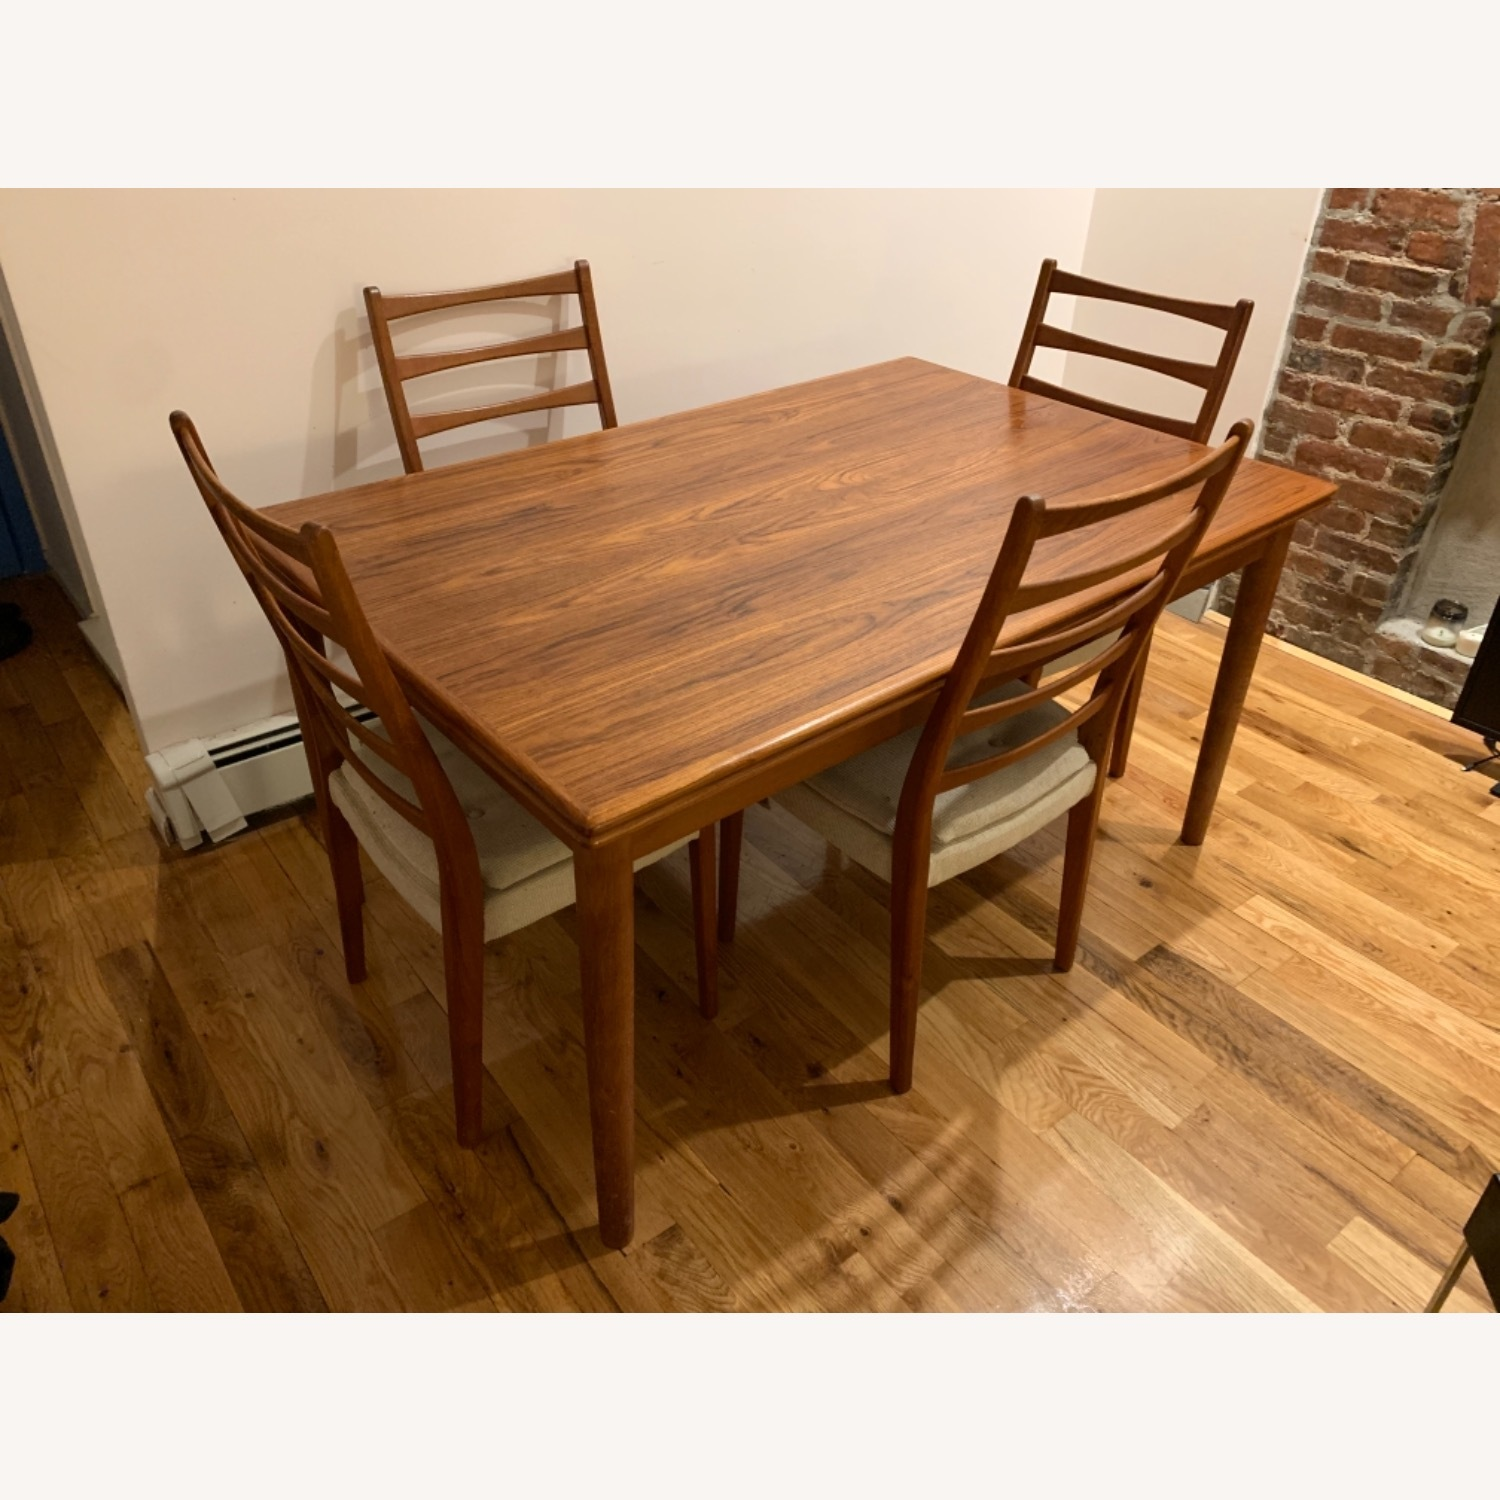 Mid Century Extendable Dining Table w/Four Chairs - image-1